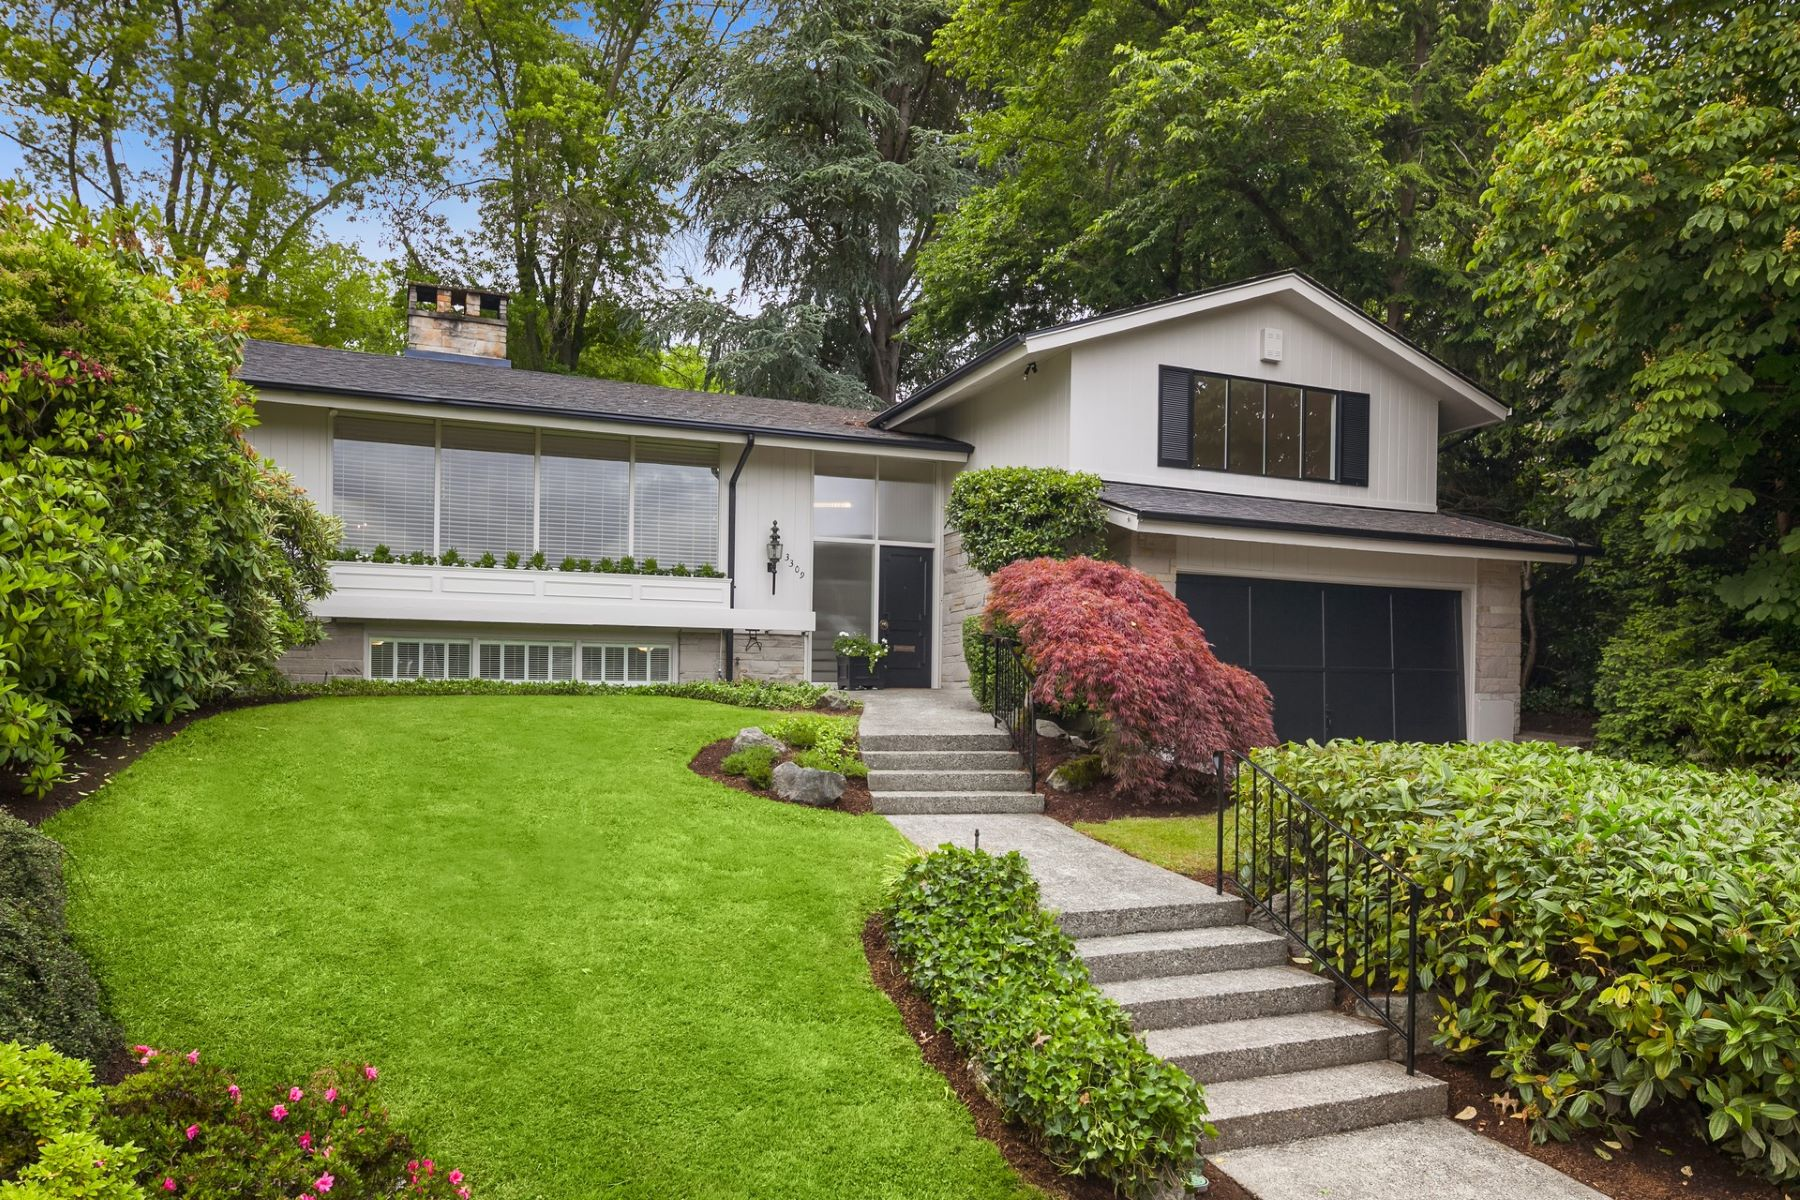 Single Family Home for Sale at Charming Contemporary in Broadmoor 3309 E Saint Andrews Way Broadmoor, Seattle, Washington, 98112 United States